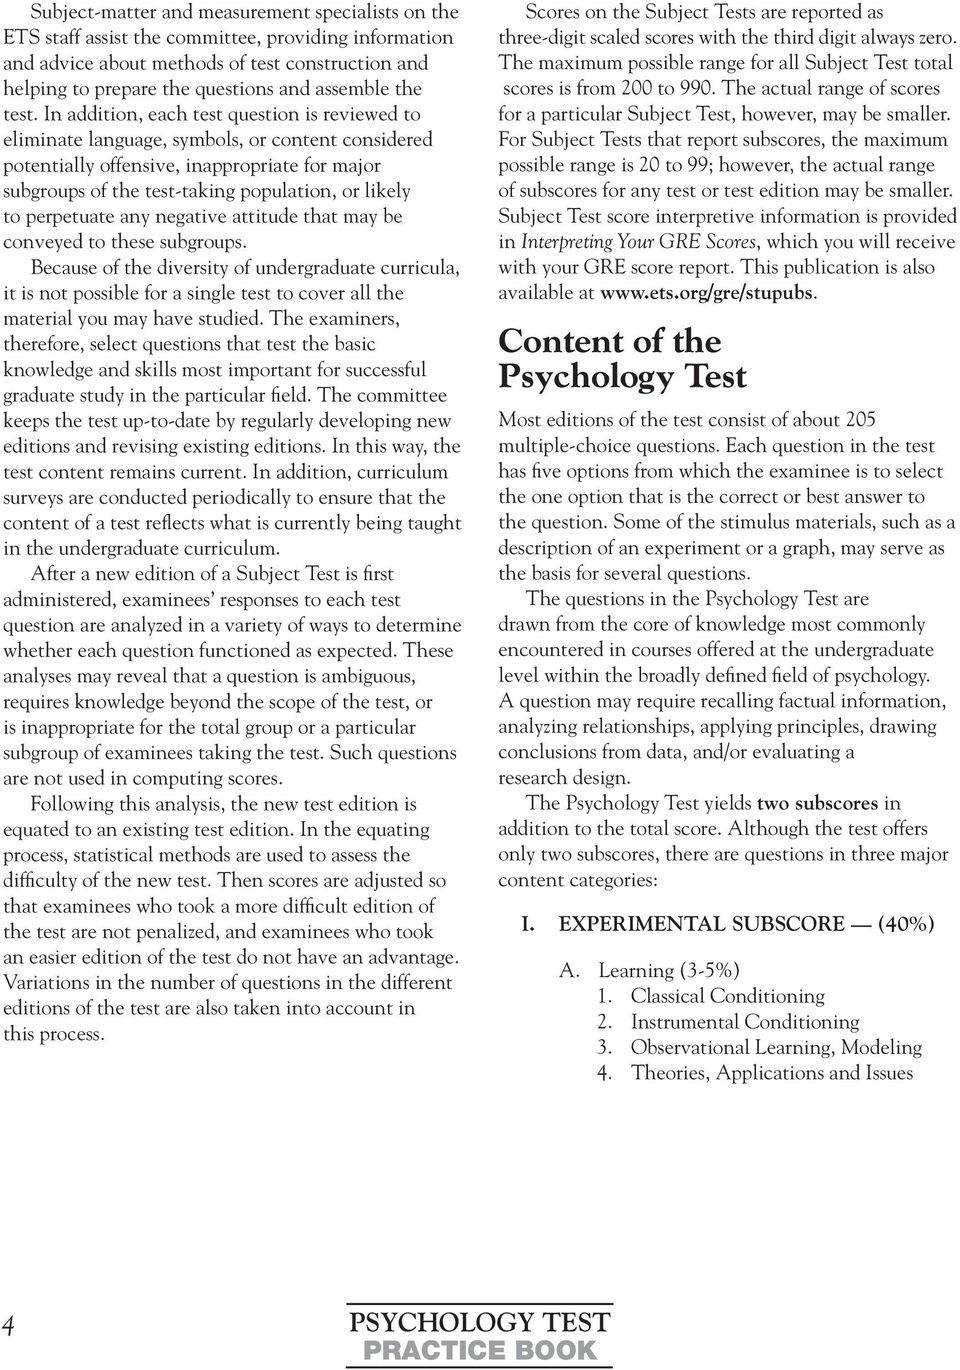 In addition, each test question is reviewed to eliminate language, symbols, or content considered potentially offensive, inappropriate for major subgroups of the test-taking population, or likely to